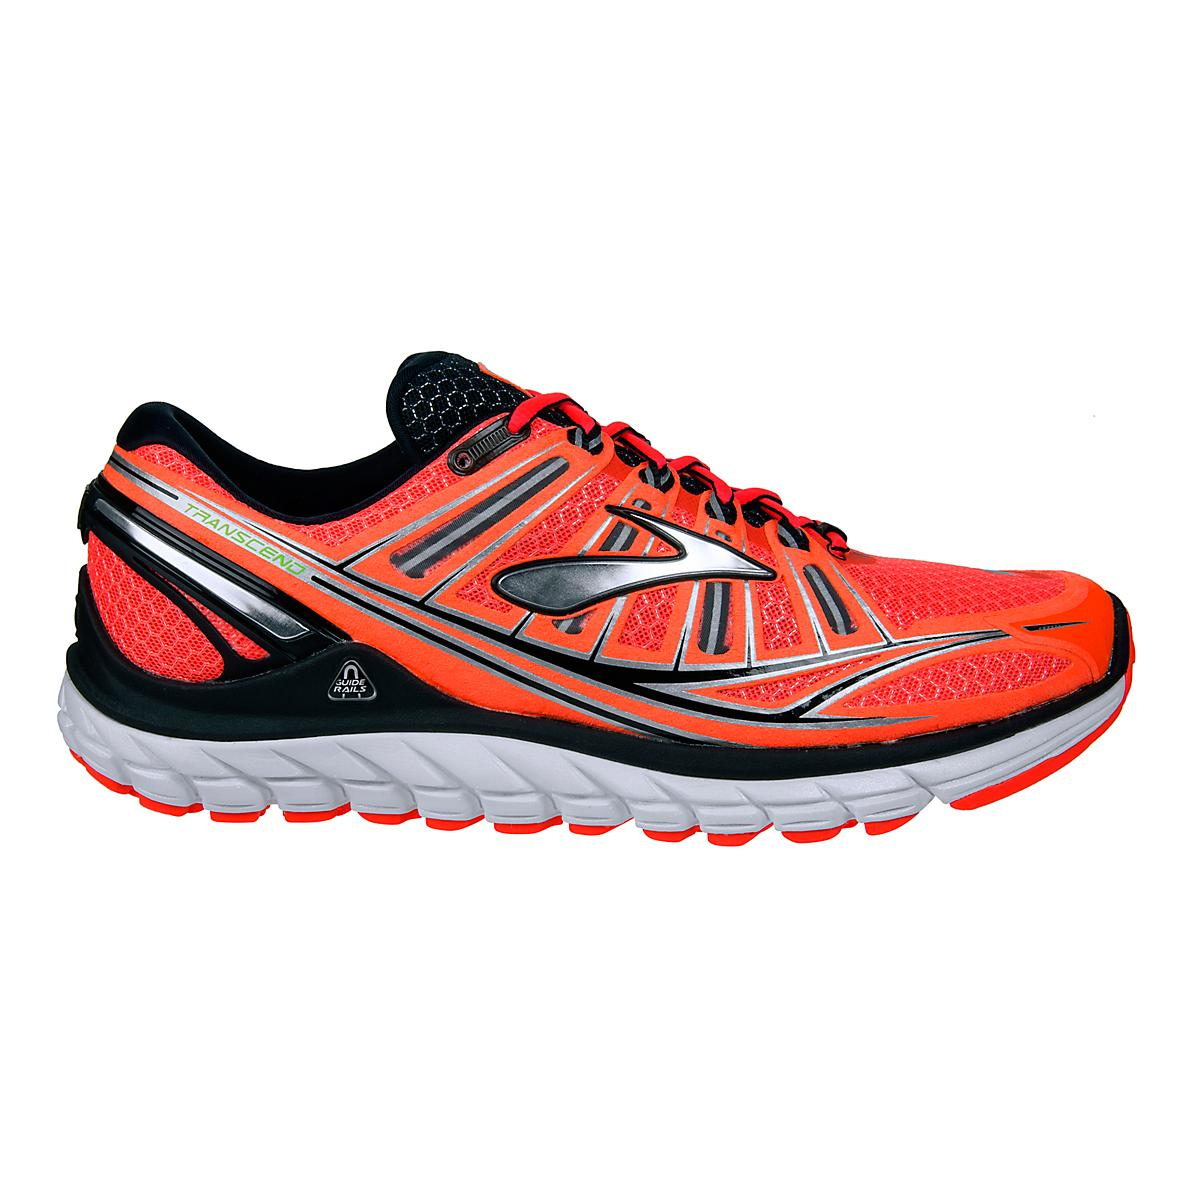 354cb14ab3c59 Mens Brooks Transcend Running Shoe at Road Runner Sports